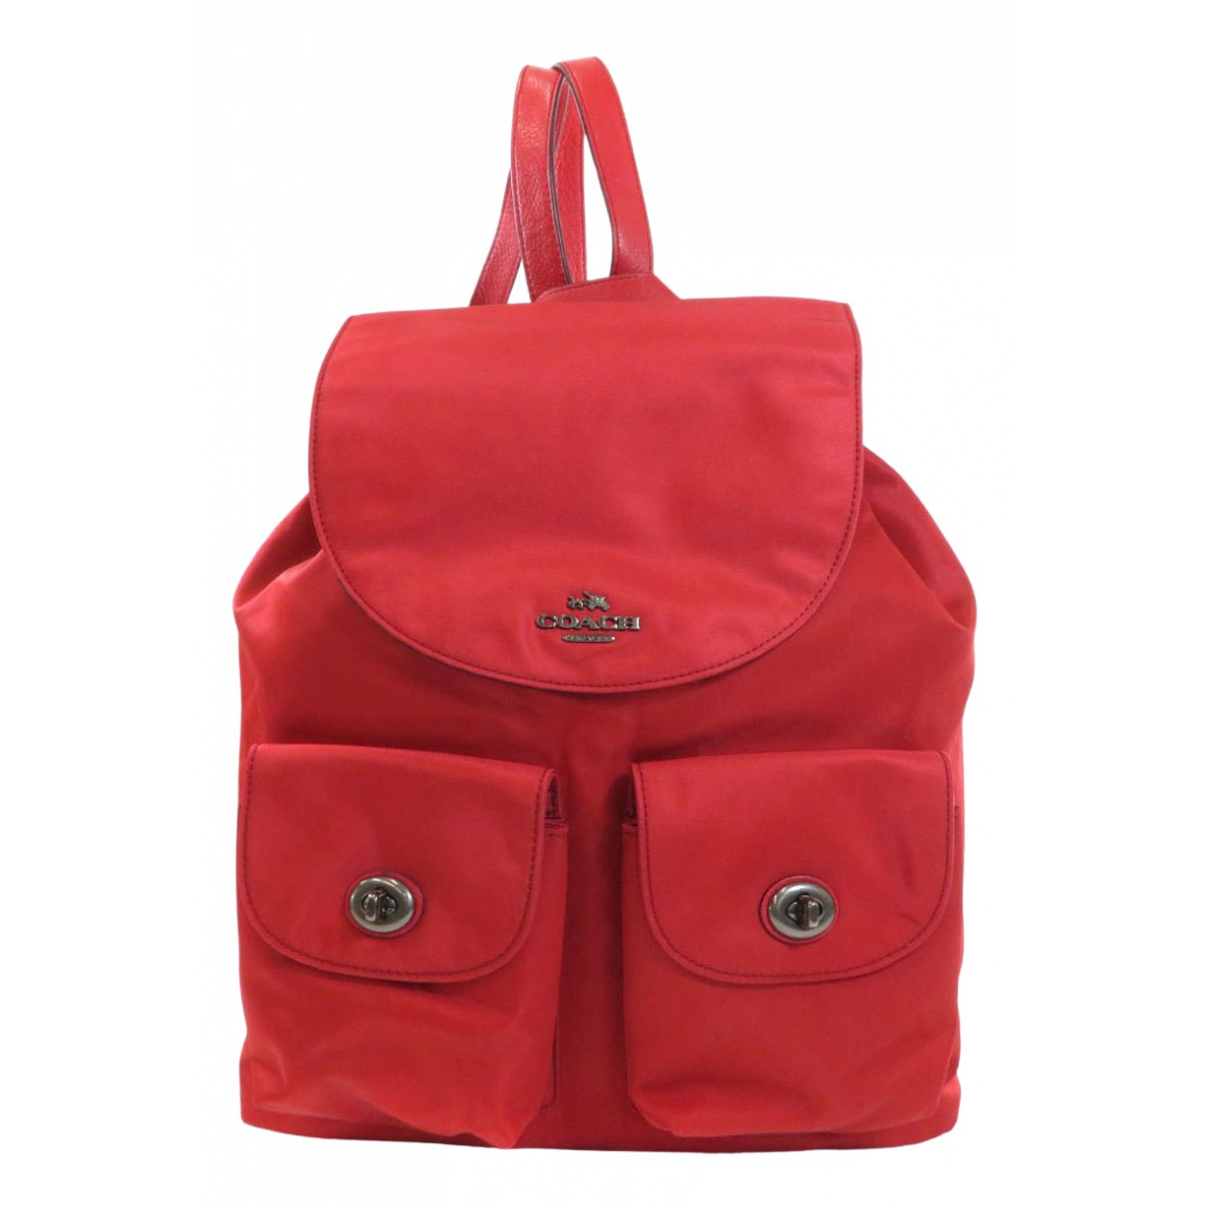 Coach \N Red Leather backpack for Women \N